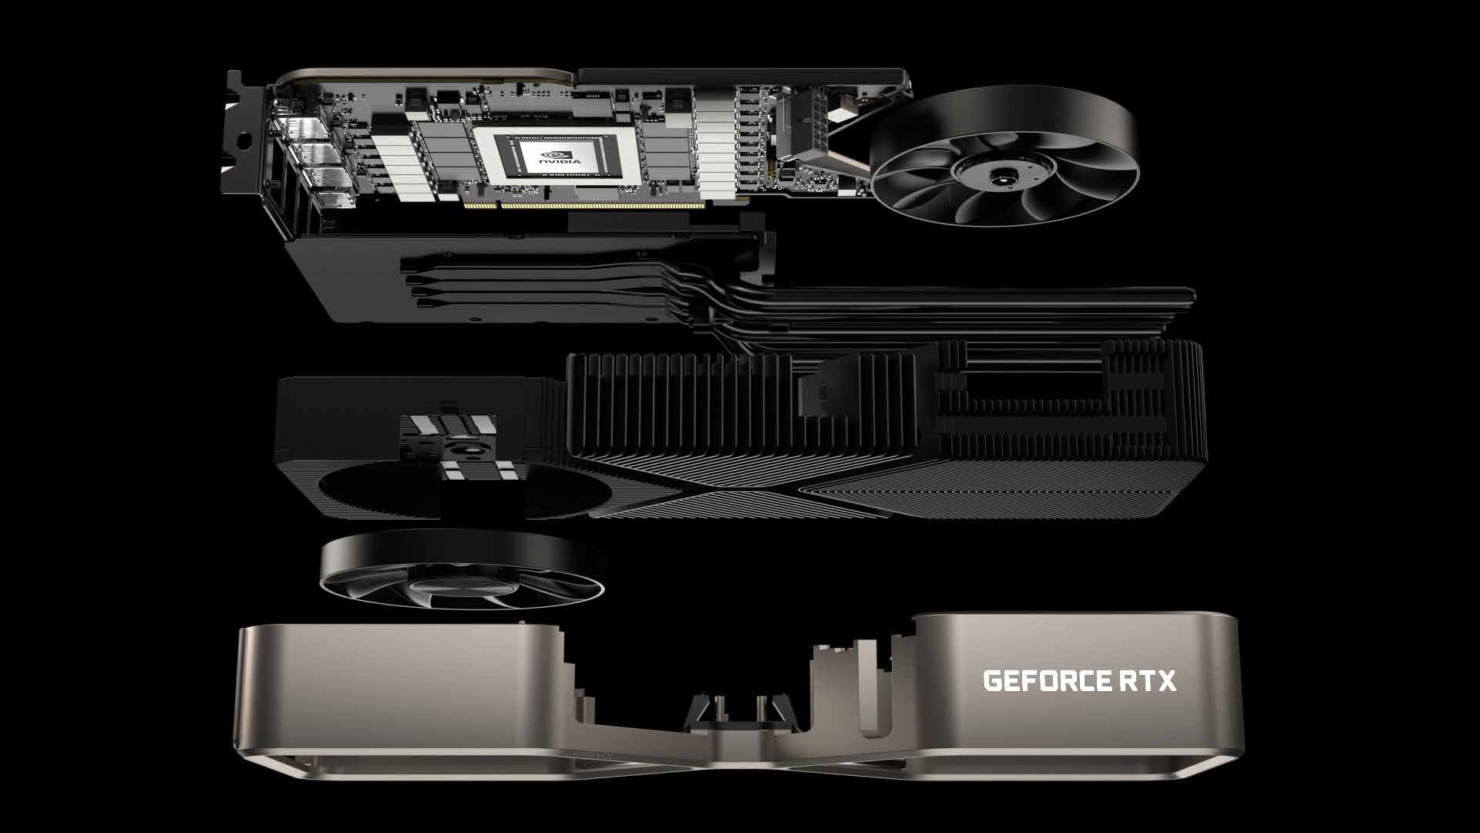 nvidia-geforce-rtx-3080-graphics-card-benchmarks-&-game-performance-tests-leak-out,-allegedly-30%-faster-than-the-rtx-2080-ti